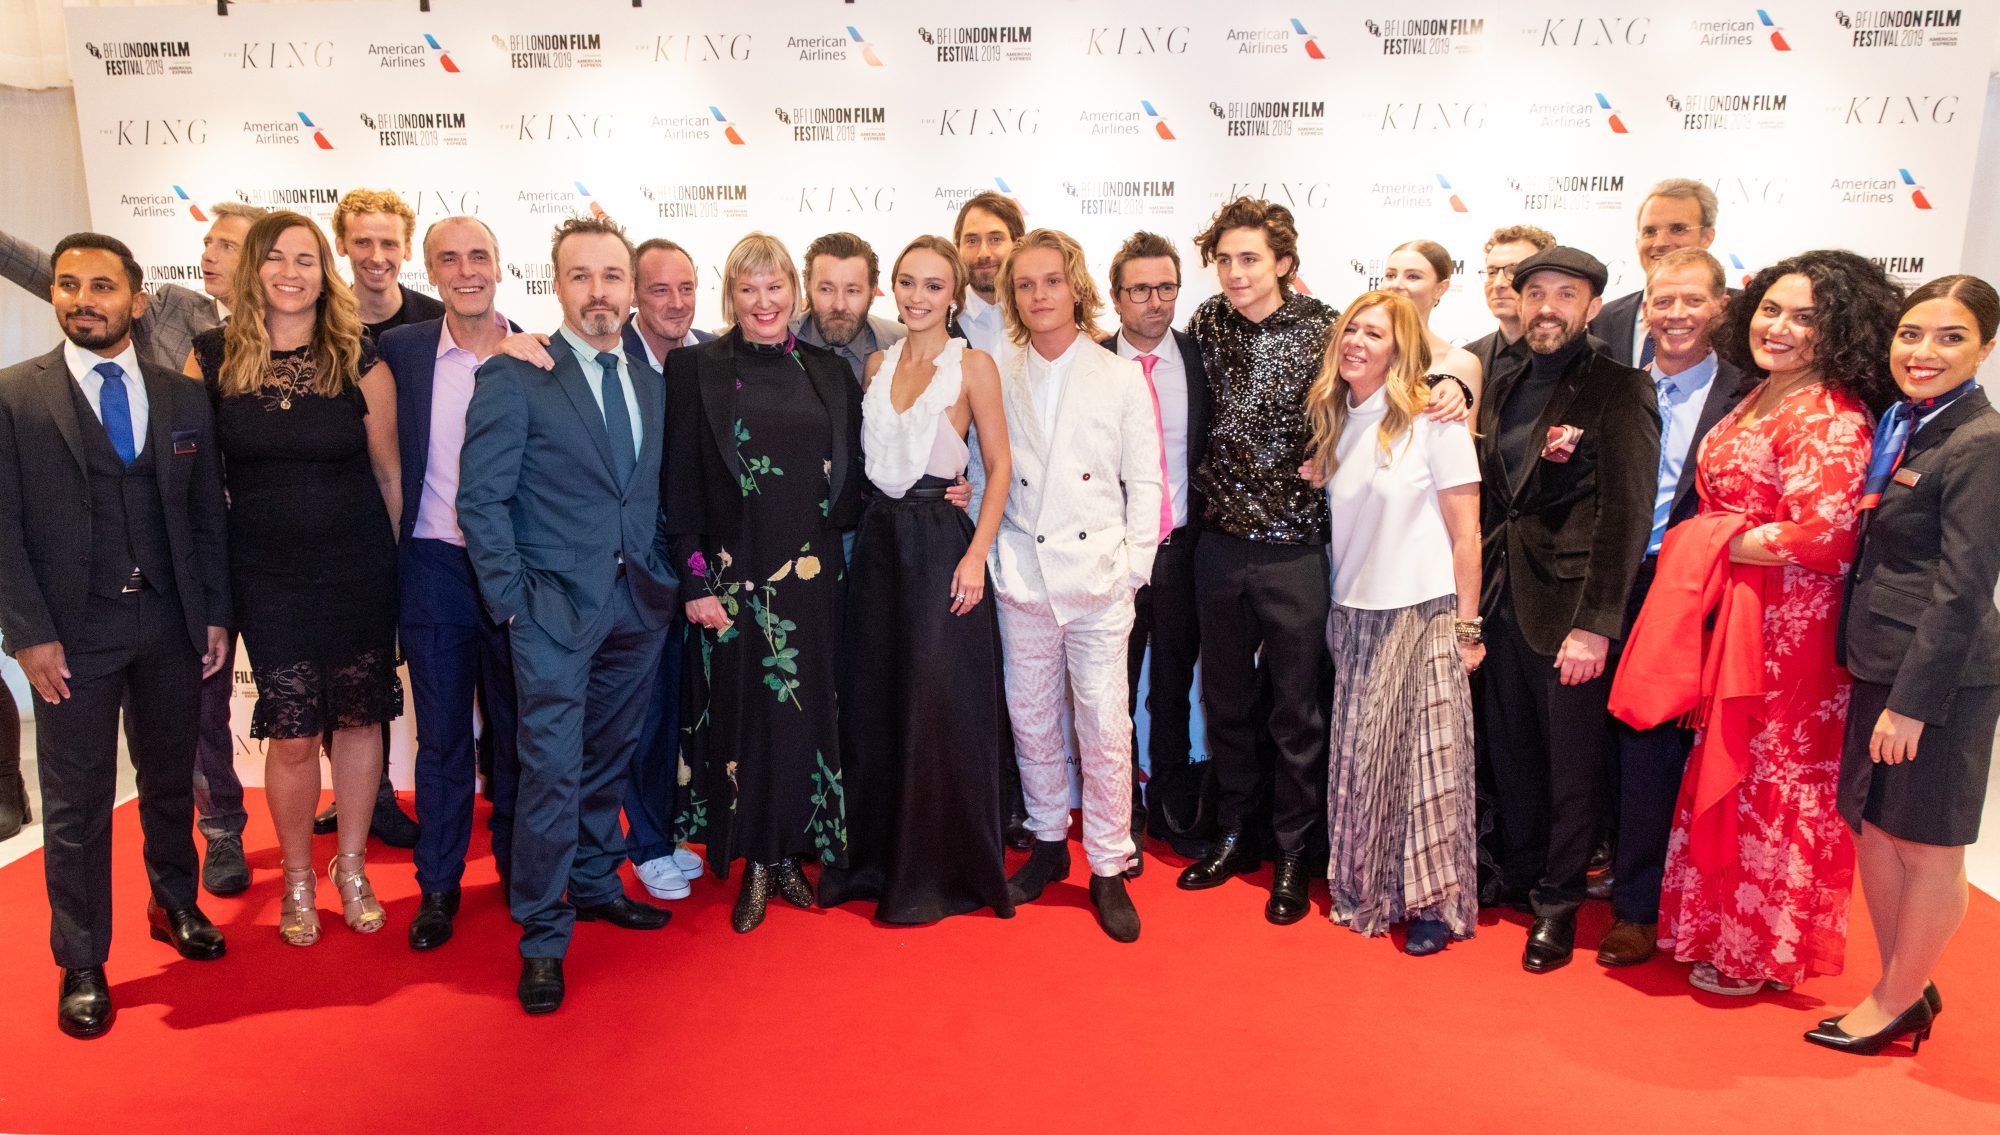 Cast, Crew and Partners of The King at The King UK Premiere during the 63rd BFI London Film Festival at Odeon Luxe Leicester Square on 3rd October 2019.  Photos: Netflix